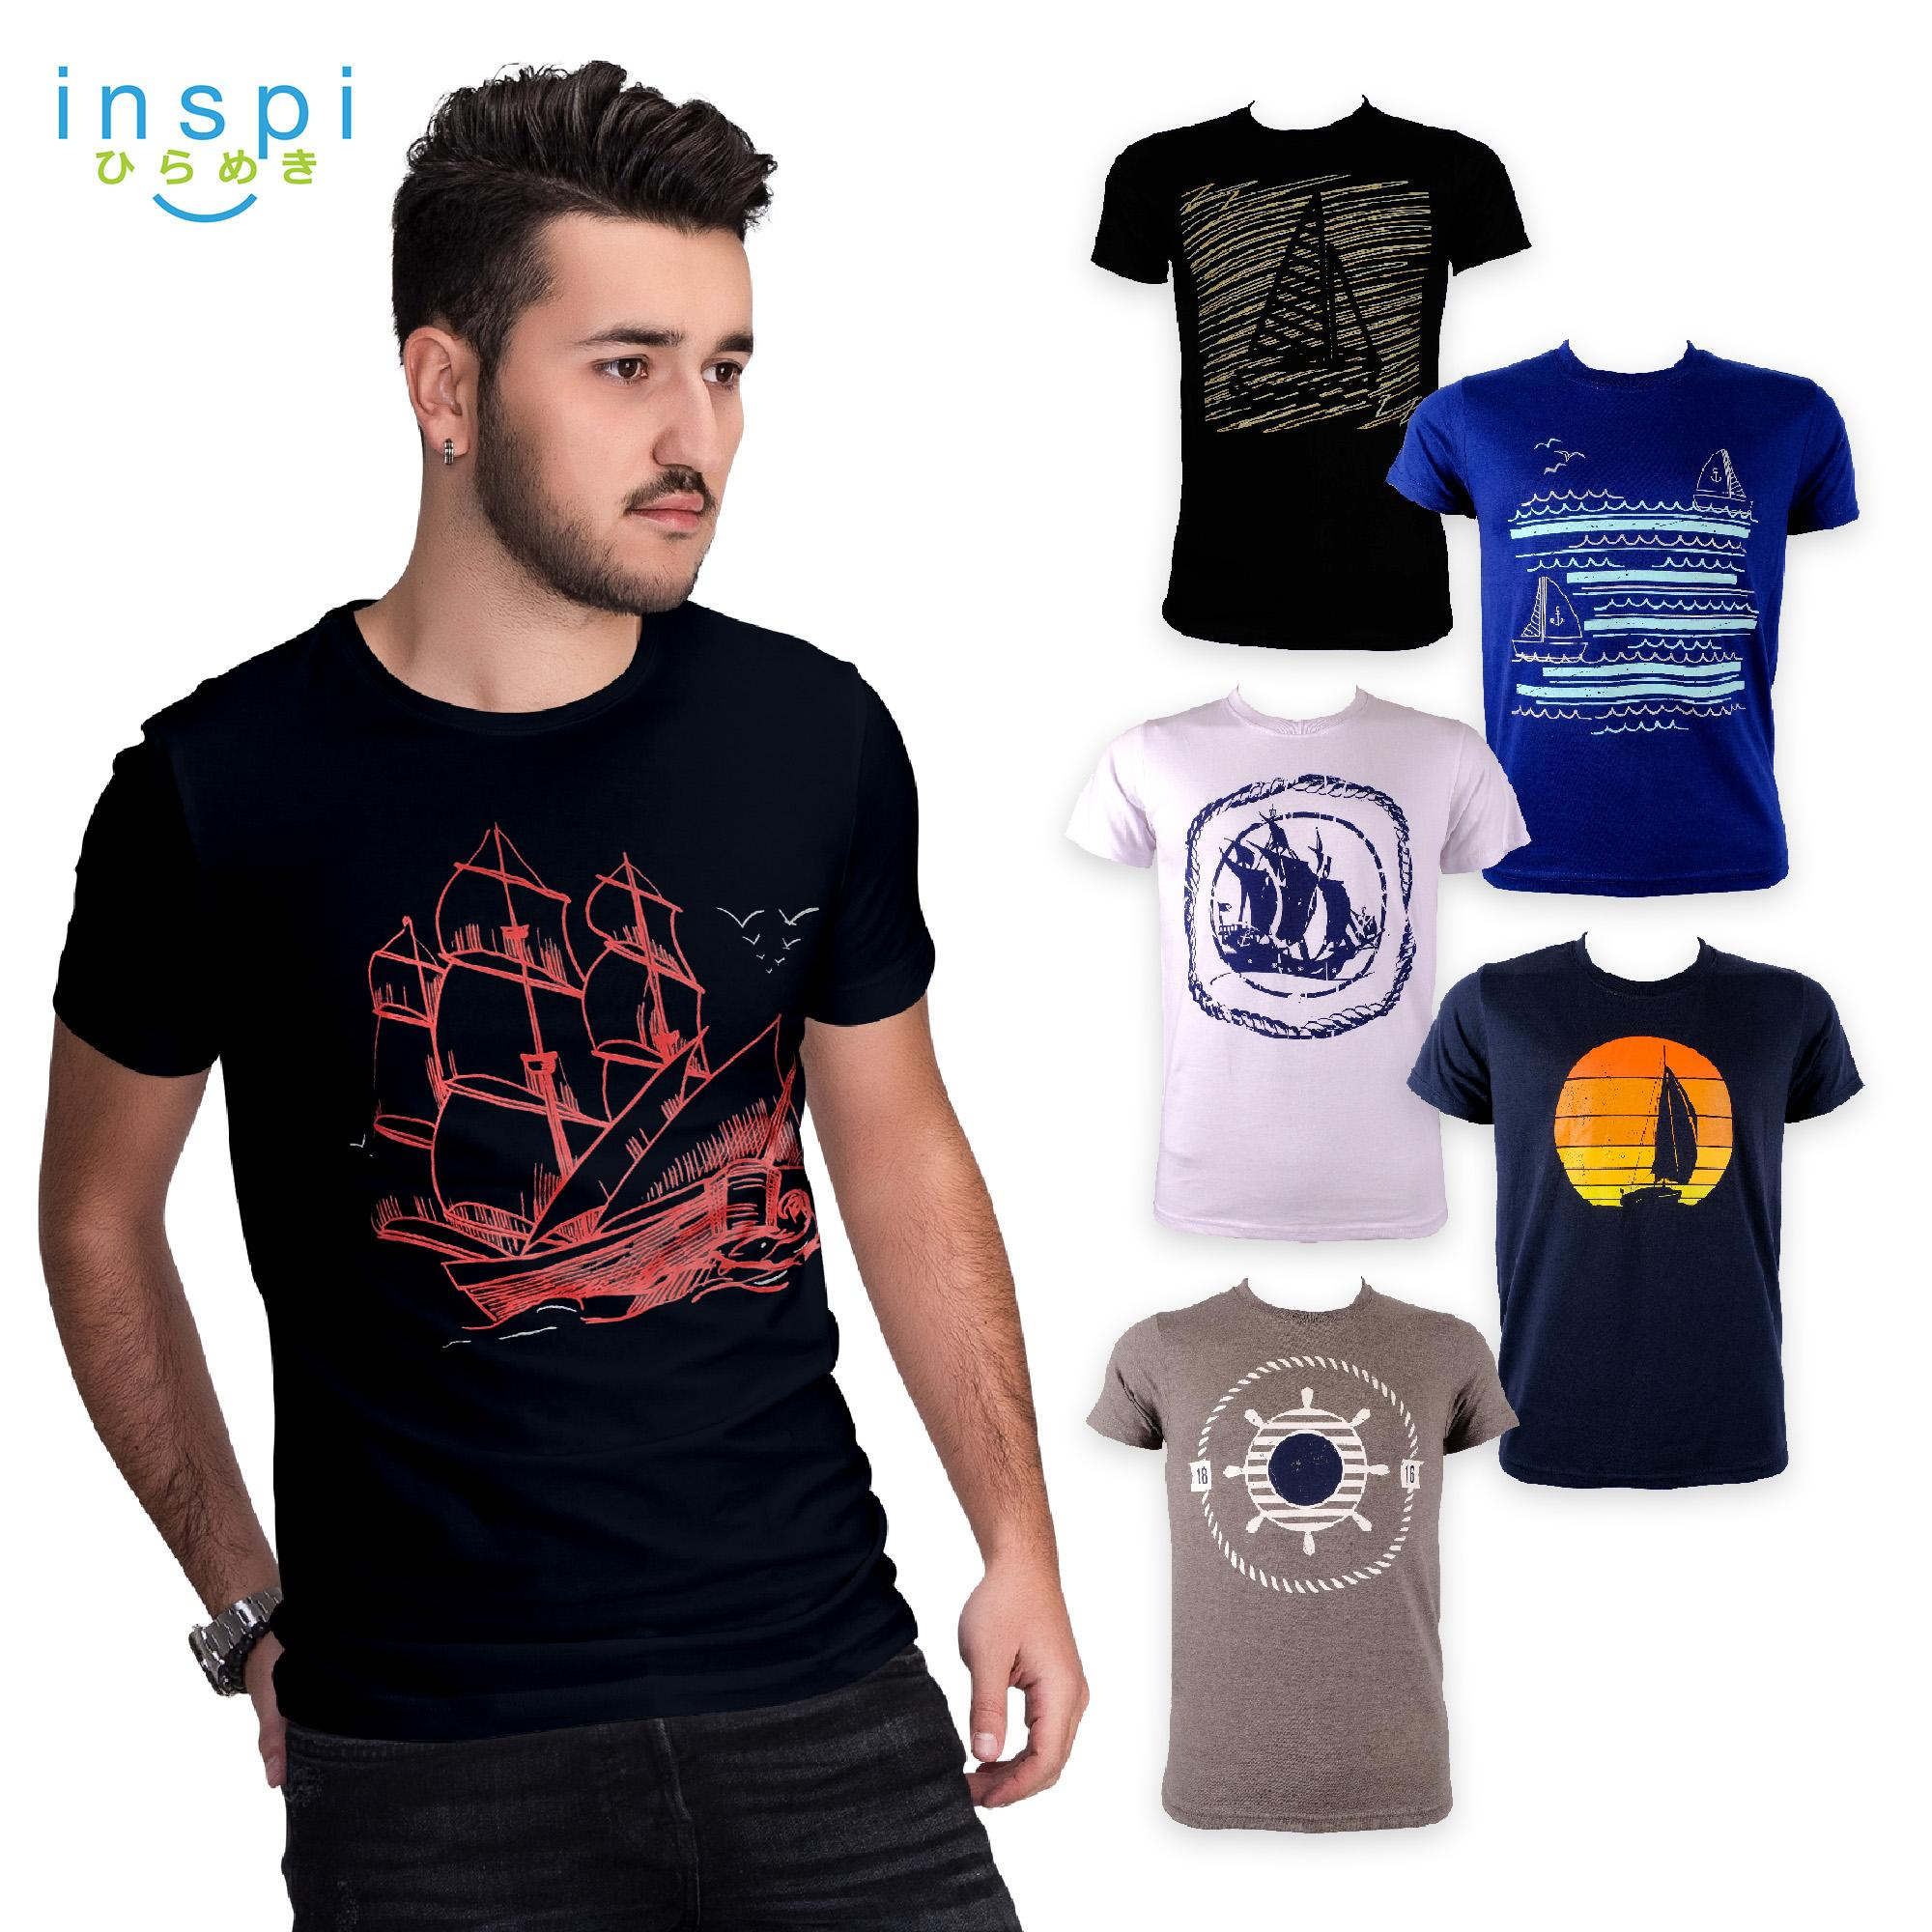 47c3f2d1c49 INSPI Tees Sailing Collection tshirt printed graphic tee Mens t shirt shirts  for men tshirts sale